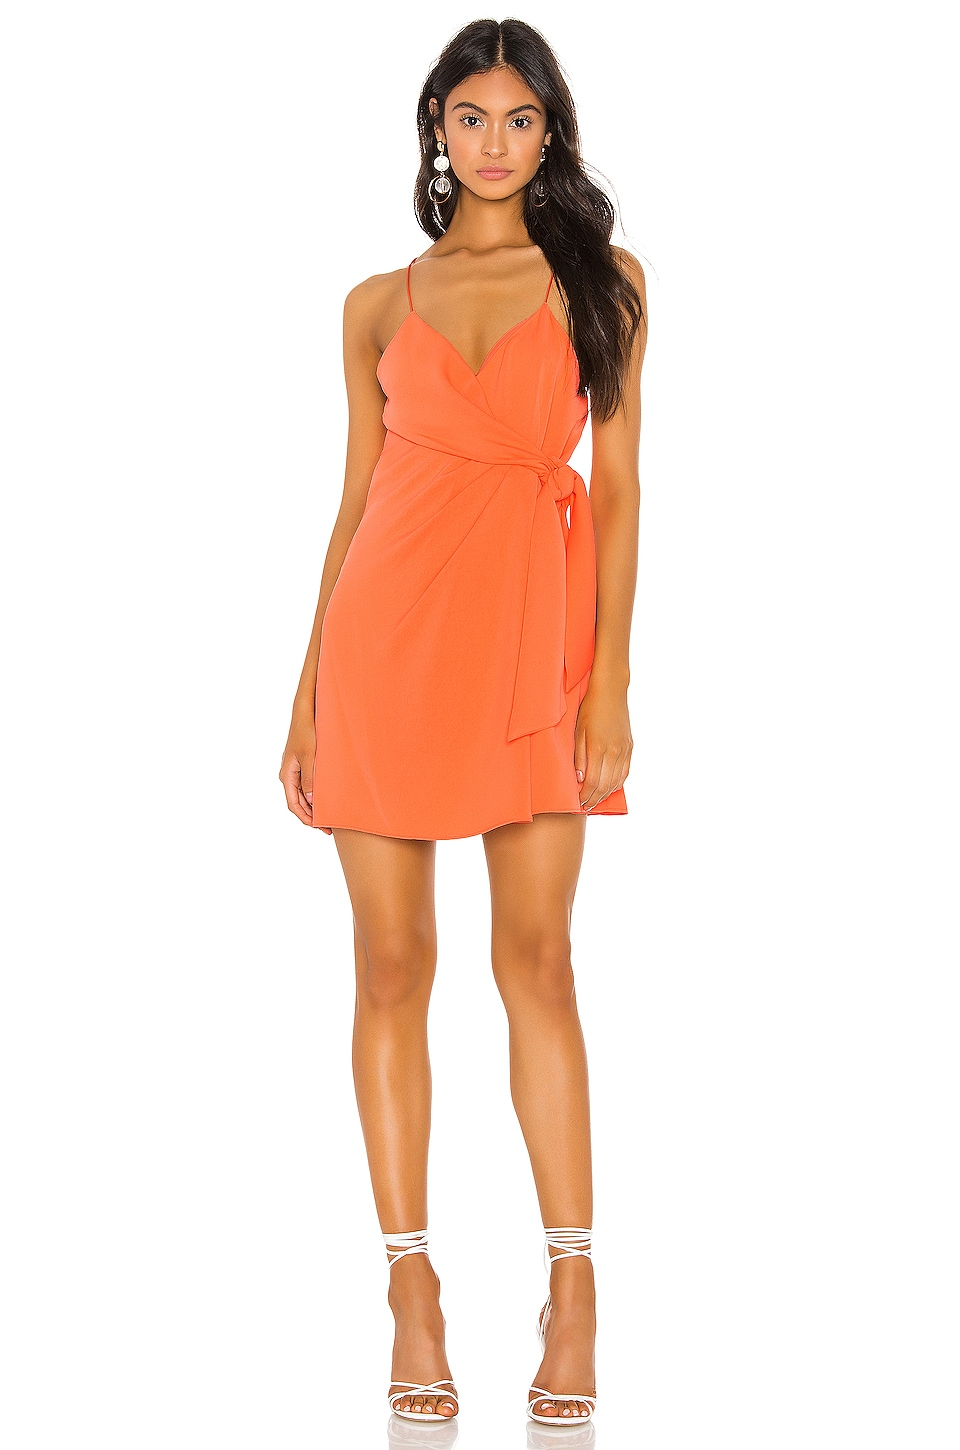 Alice + Olivia Katie Tie Wrap Mini Dress in Coral